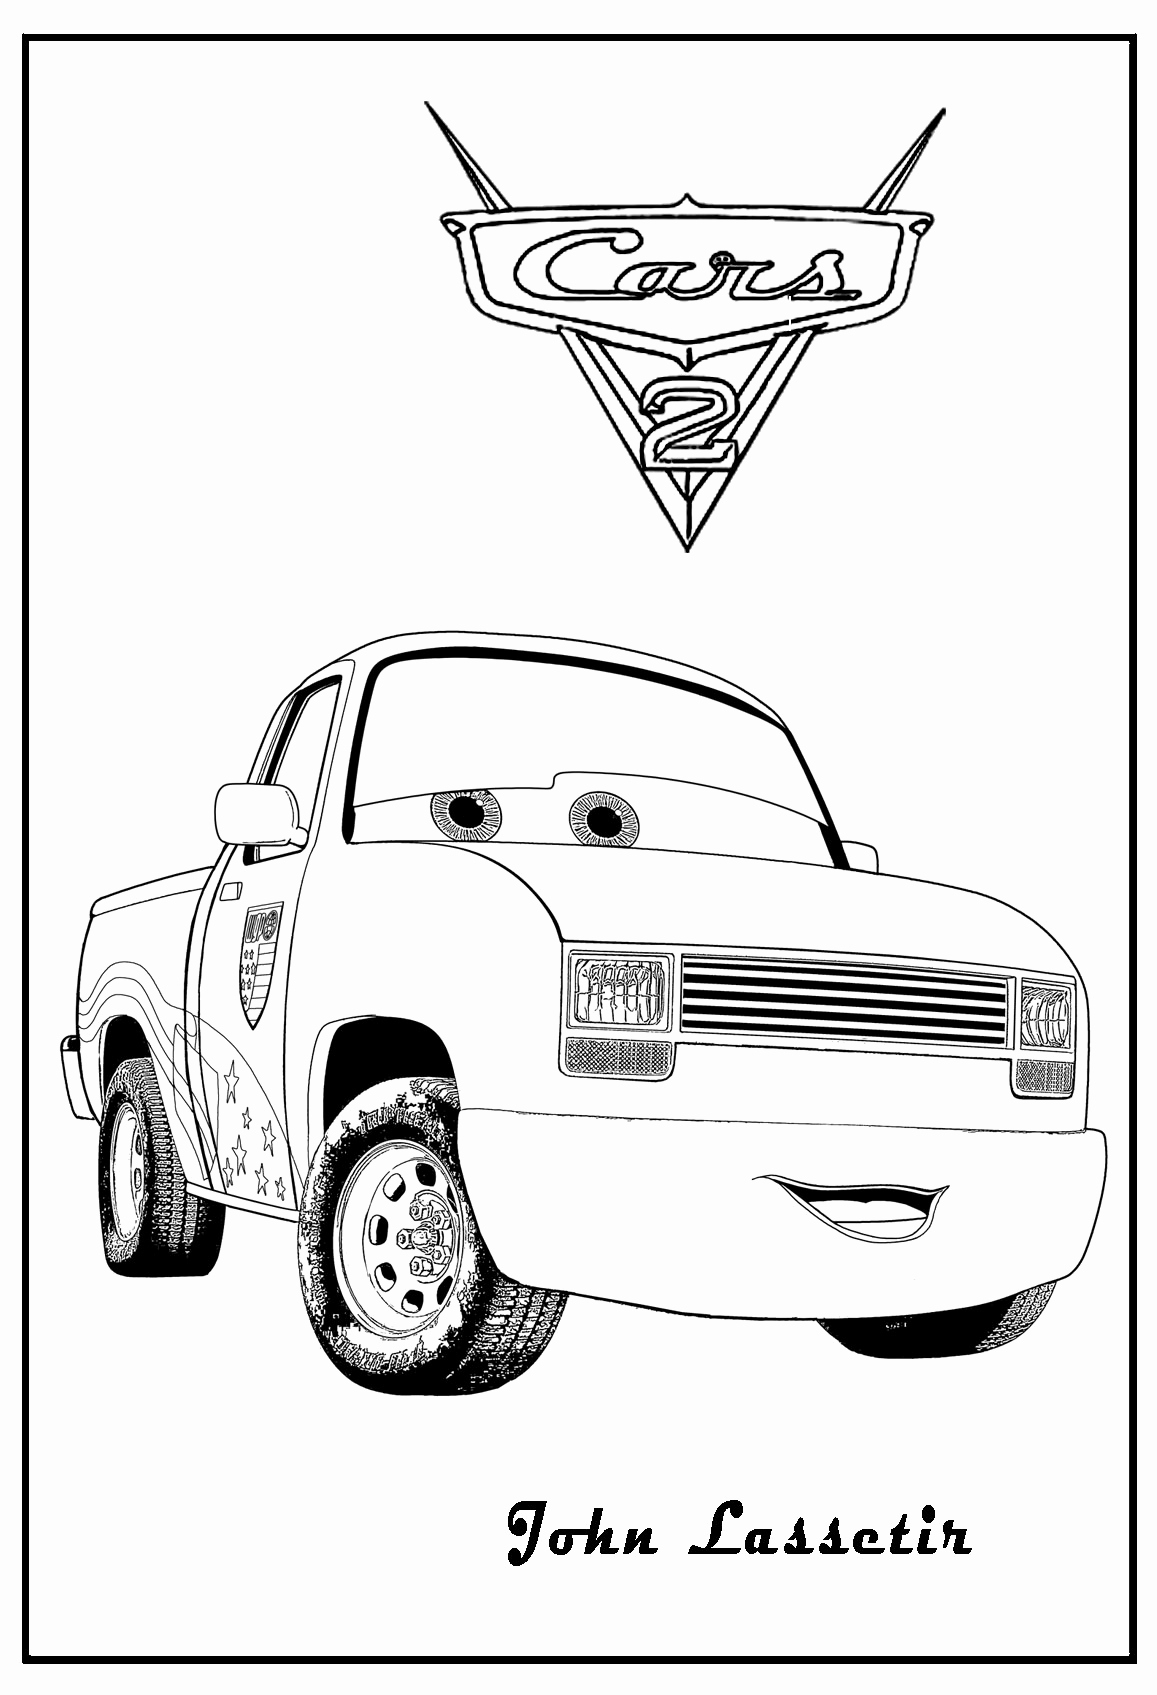 10 Inspirational Mcqueen Cars Coloring Pages Davidhowald Download Of Disney Car Coloring Pages Cars Free Download